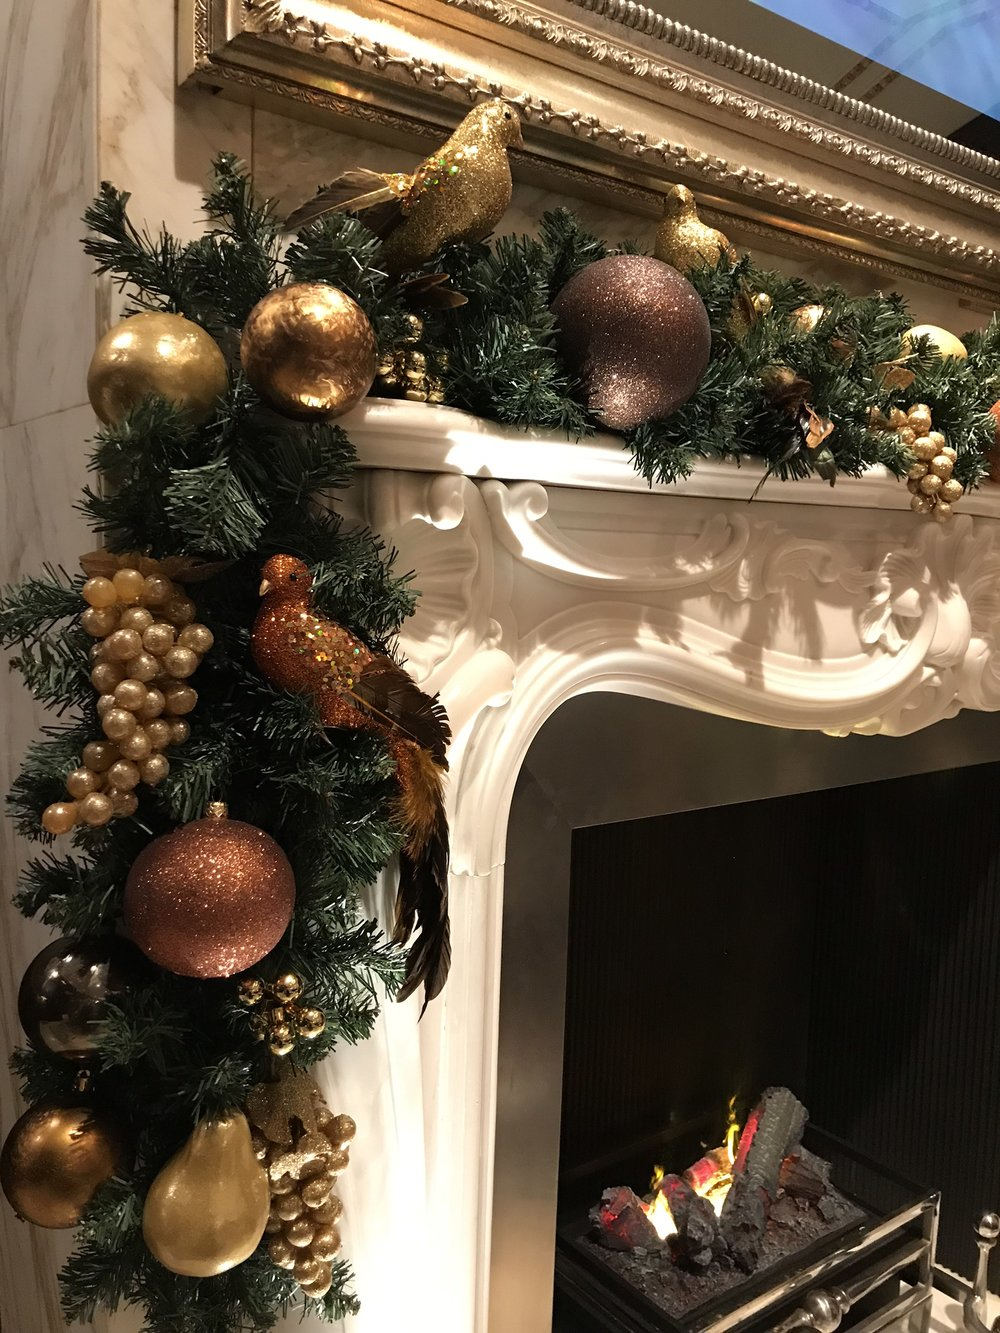 Hotel Christmas Decorations - Garlands